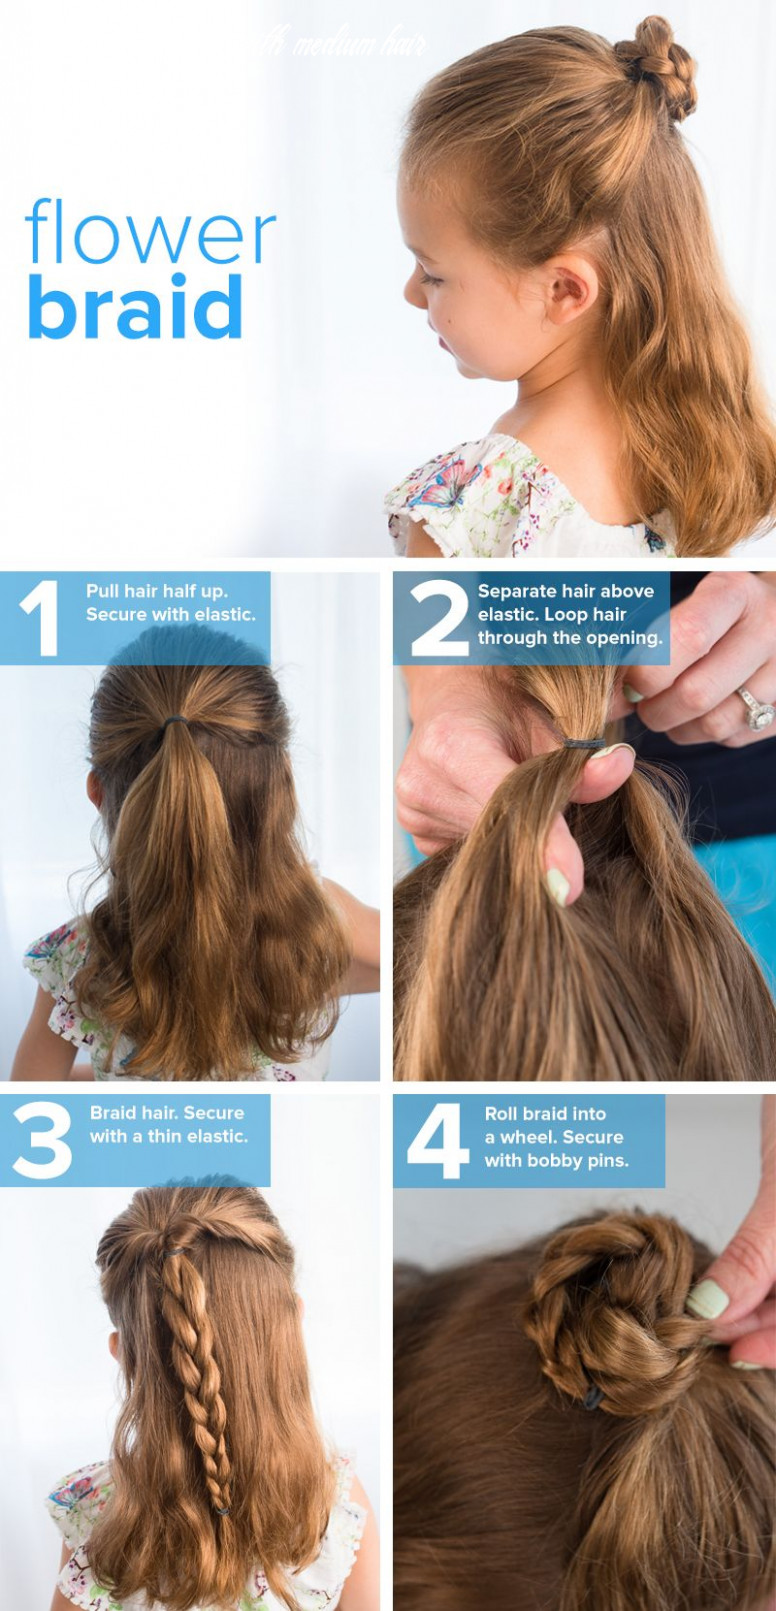 8 easy back to school hairstyles for girls | cute simple